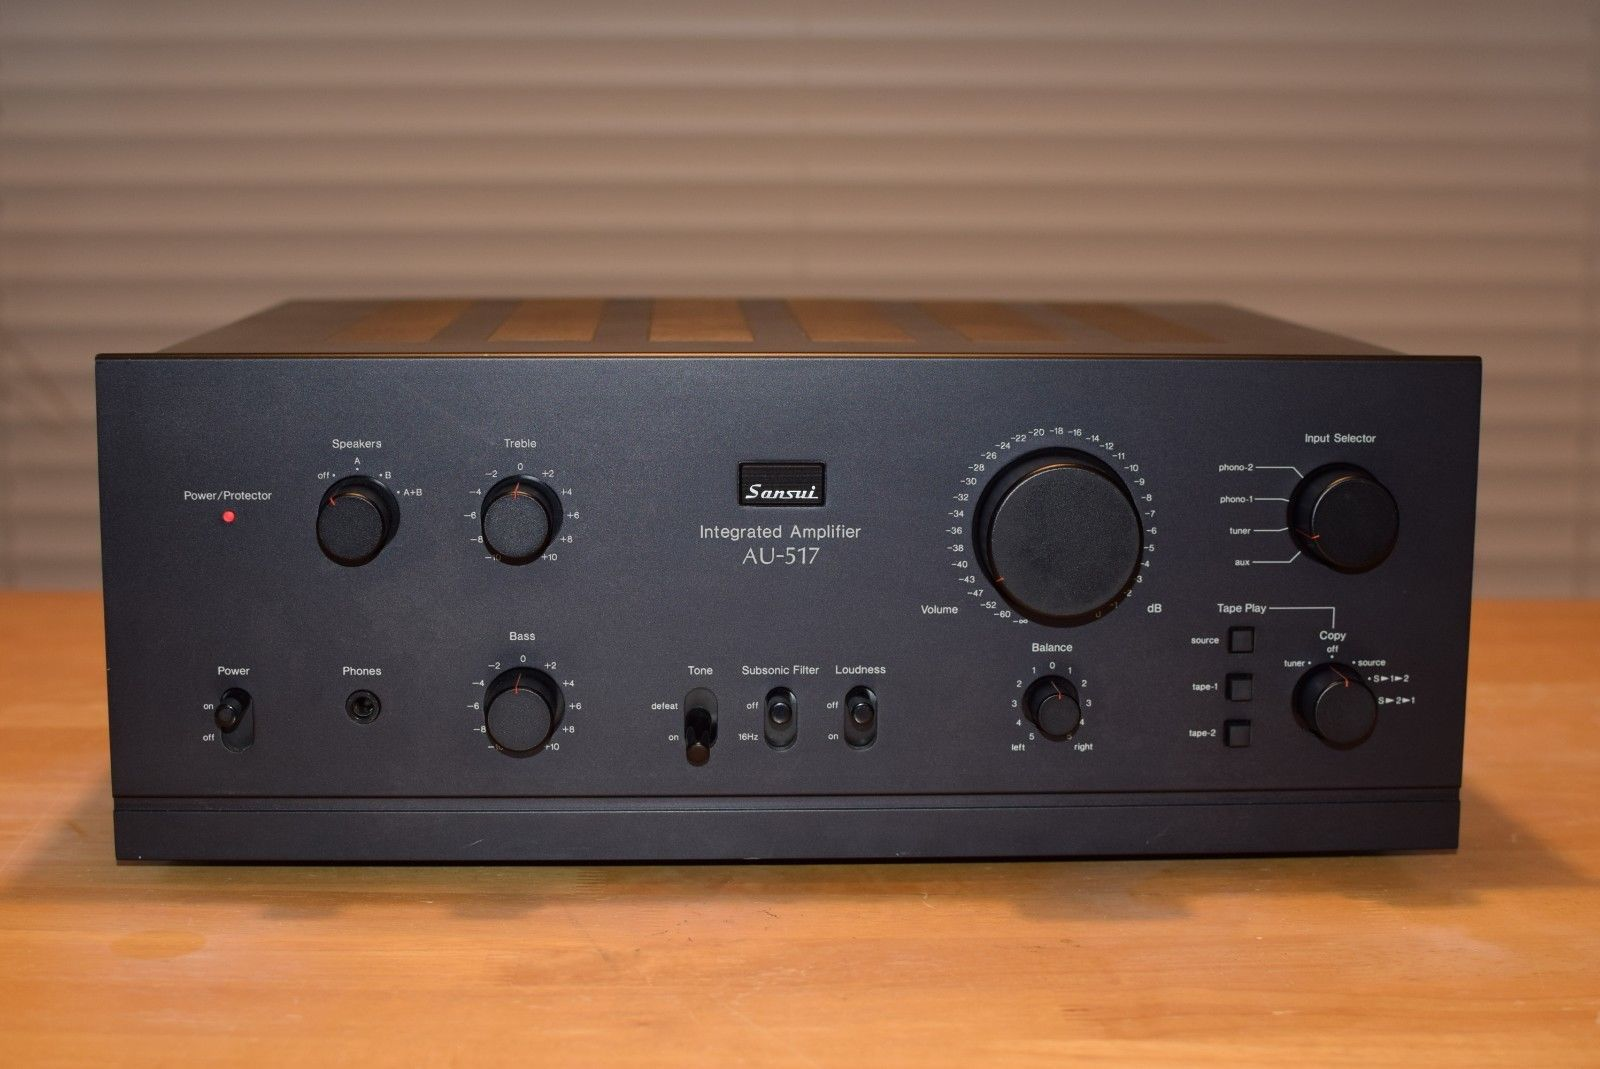 Sansui AU-517 Vintage Stereo Integrated Amplifier | HiFi ... on